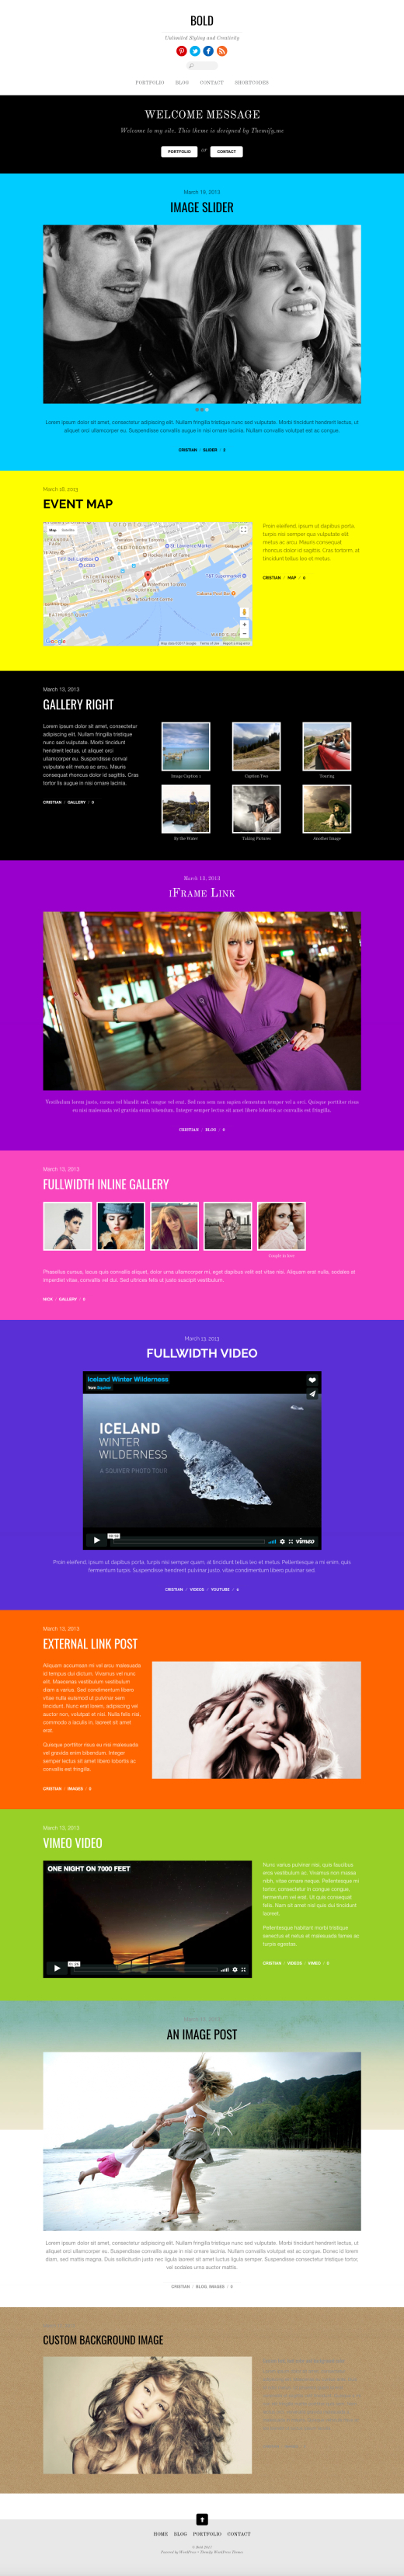 Bold - Stylish Blog and Portfolio Theme